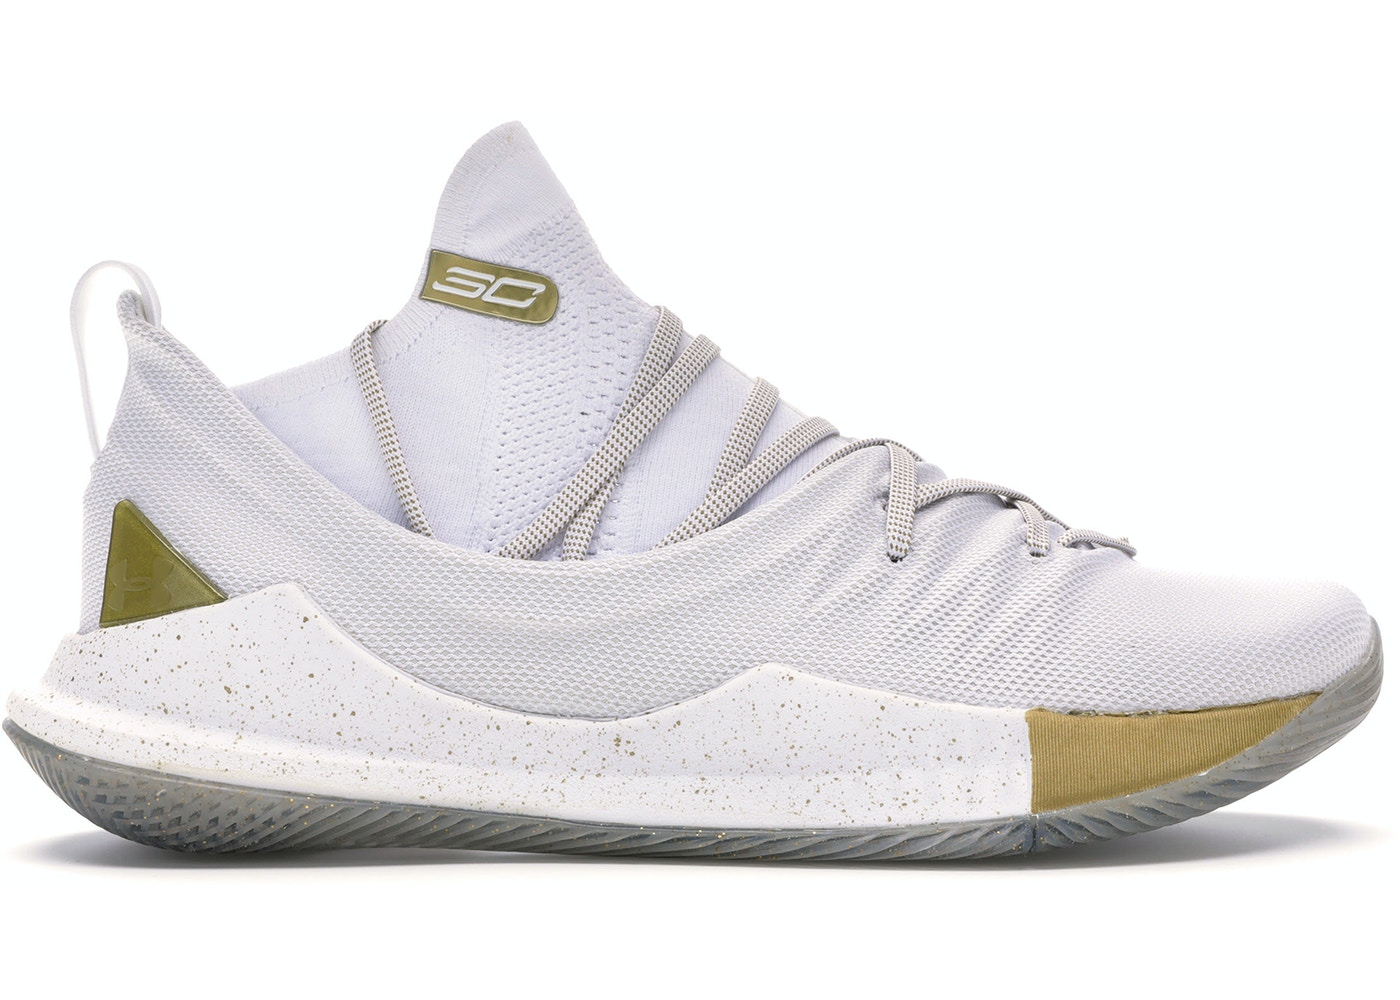 timeless design 6cba1 f5e20 Under Armour Curry 5 White Gold